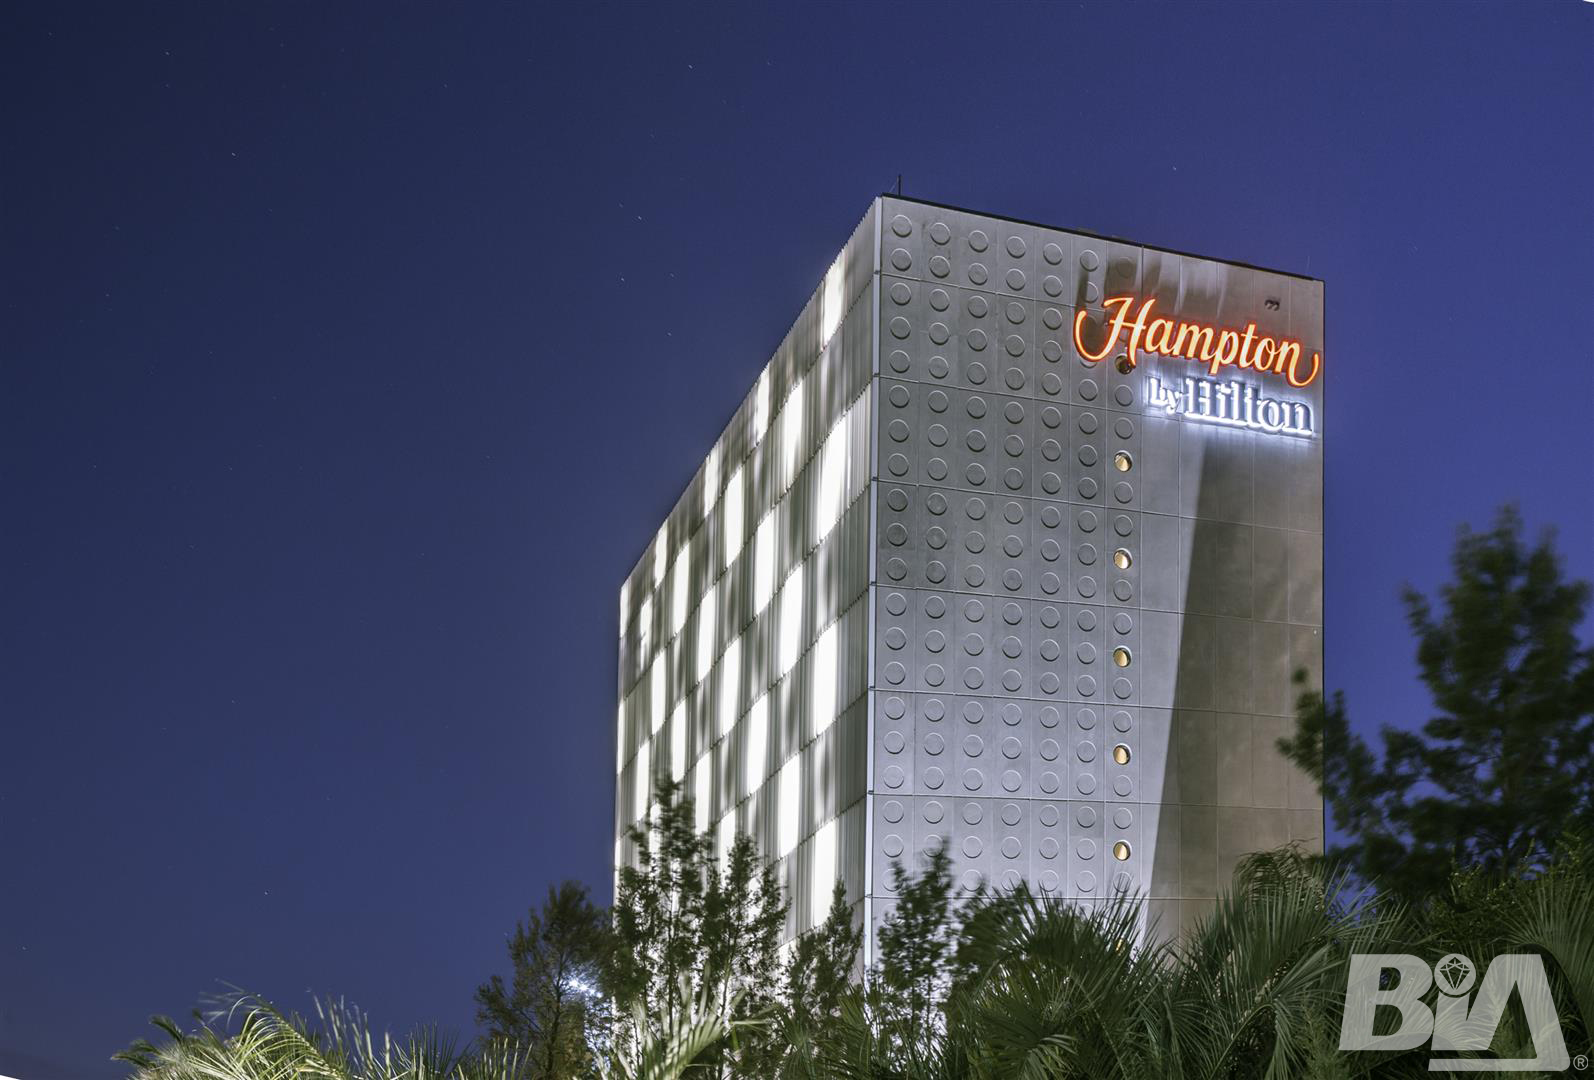 BIA   Hotel Hampton By Hilton 89 Large